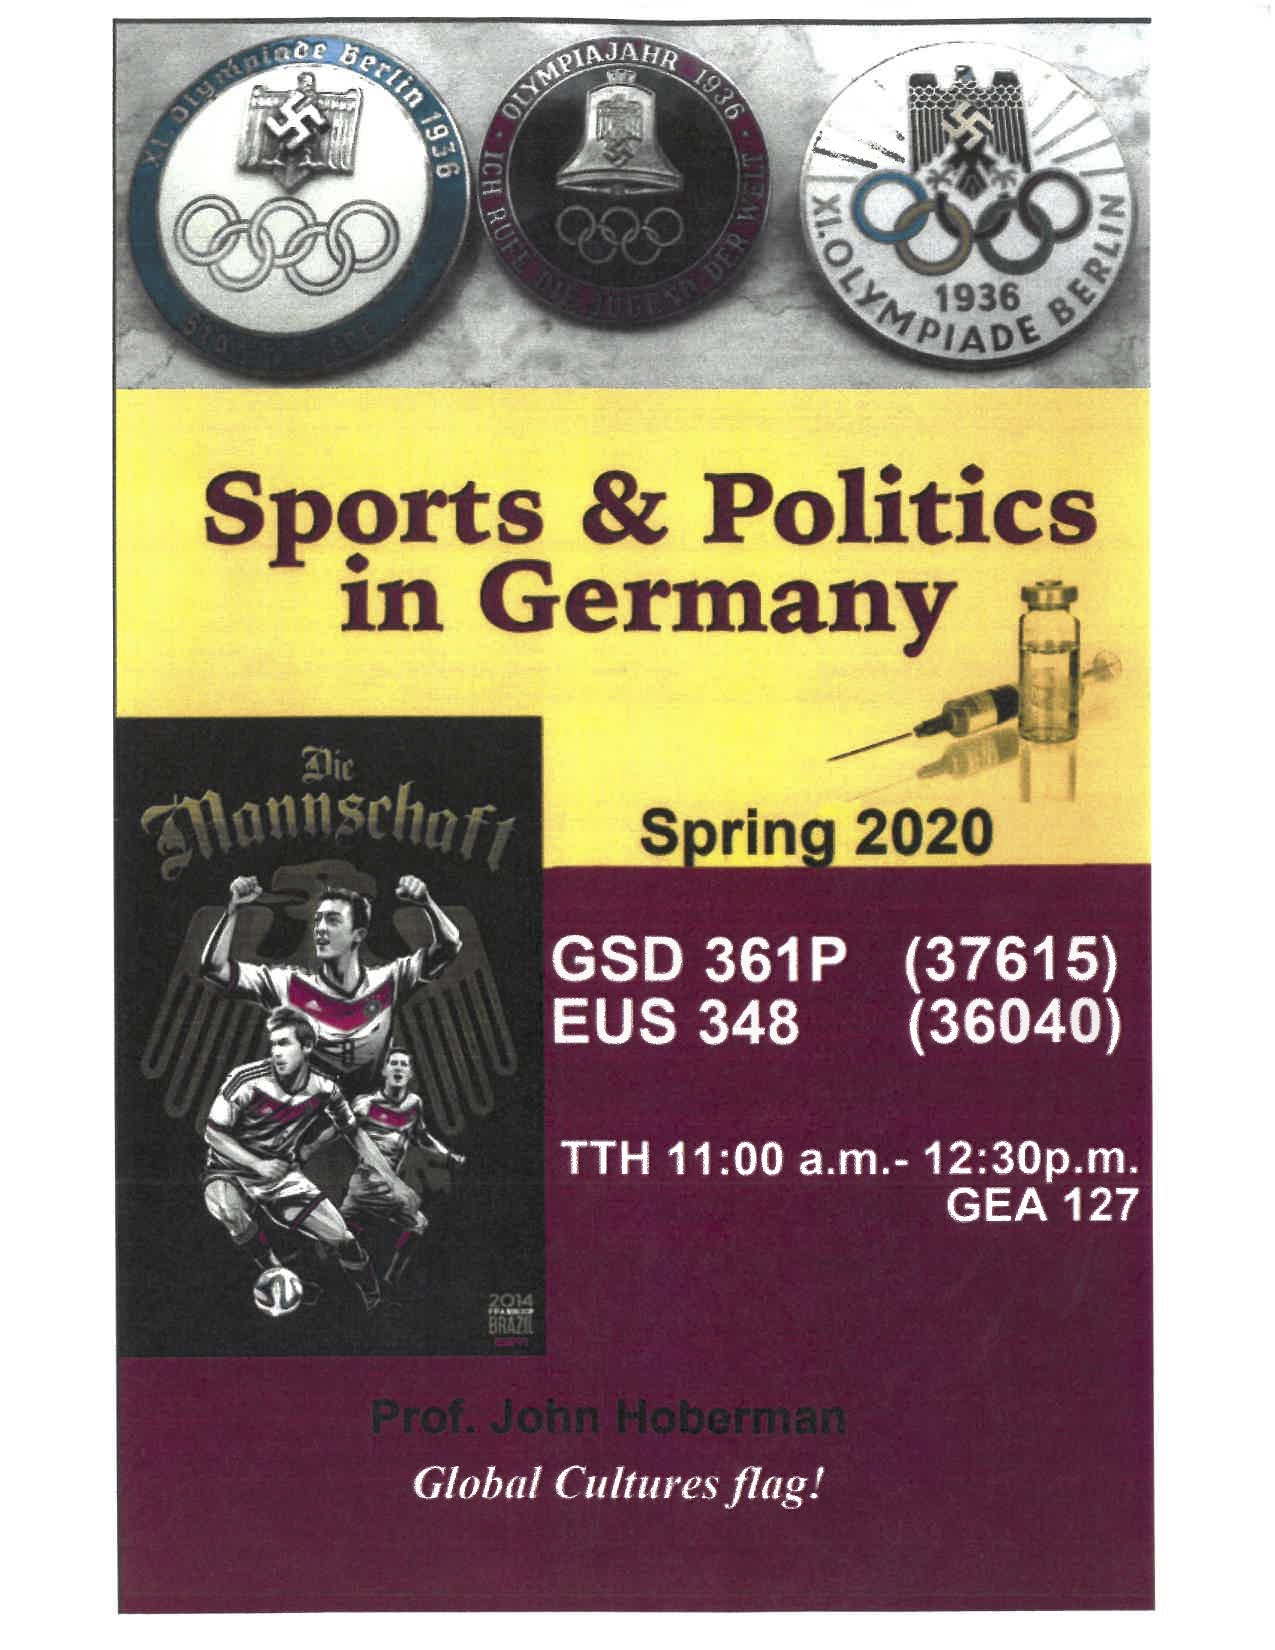 Spring 2020 course: Sports and Politics in Germany